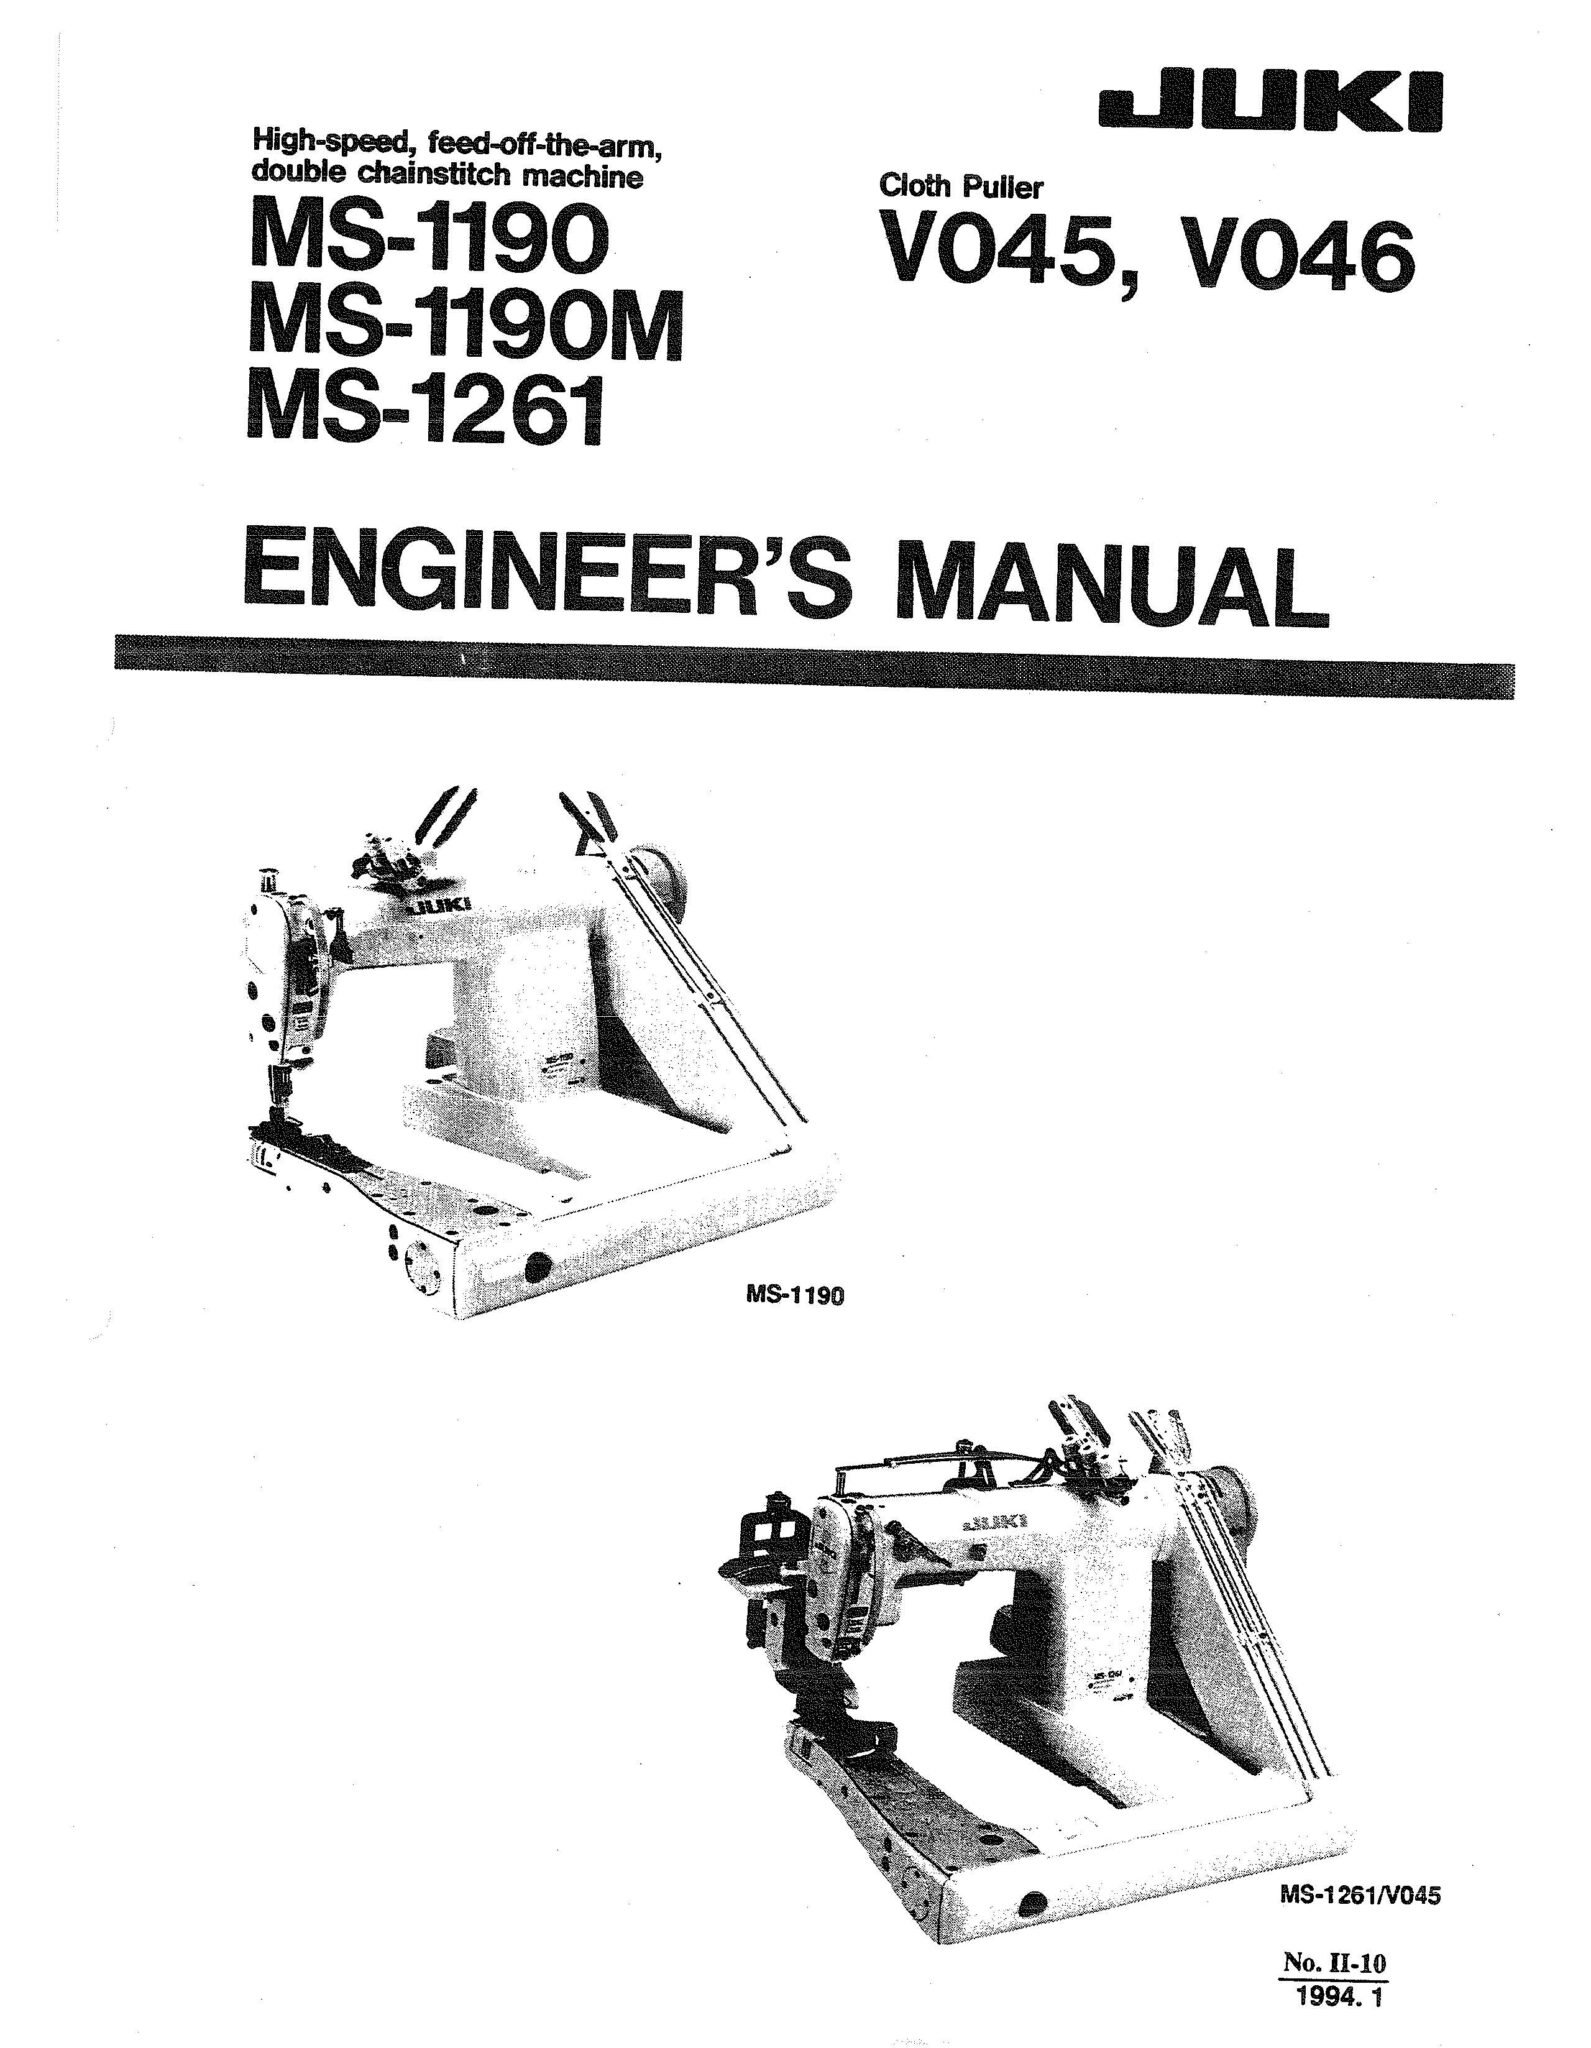 Service Manual MS-1190, 1190M, 1261, VO45, VO46 Series Sewing